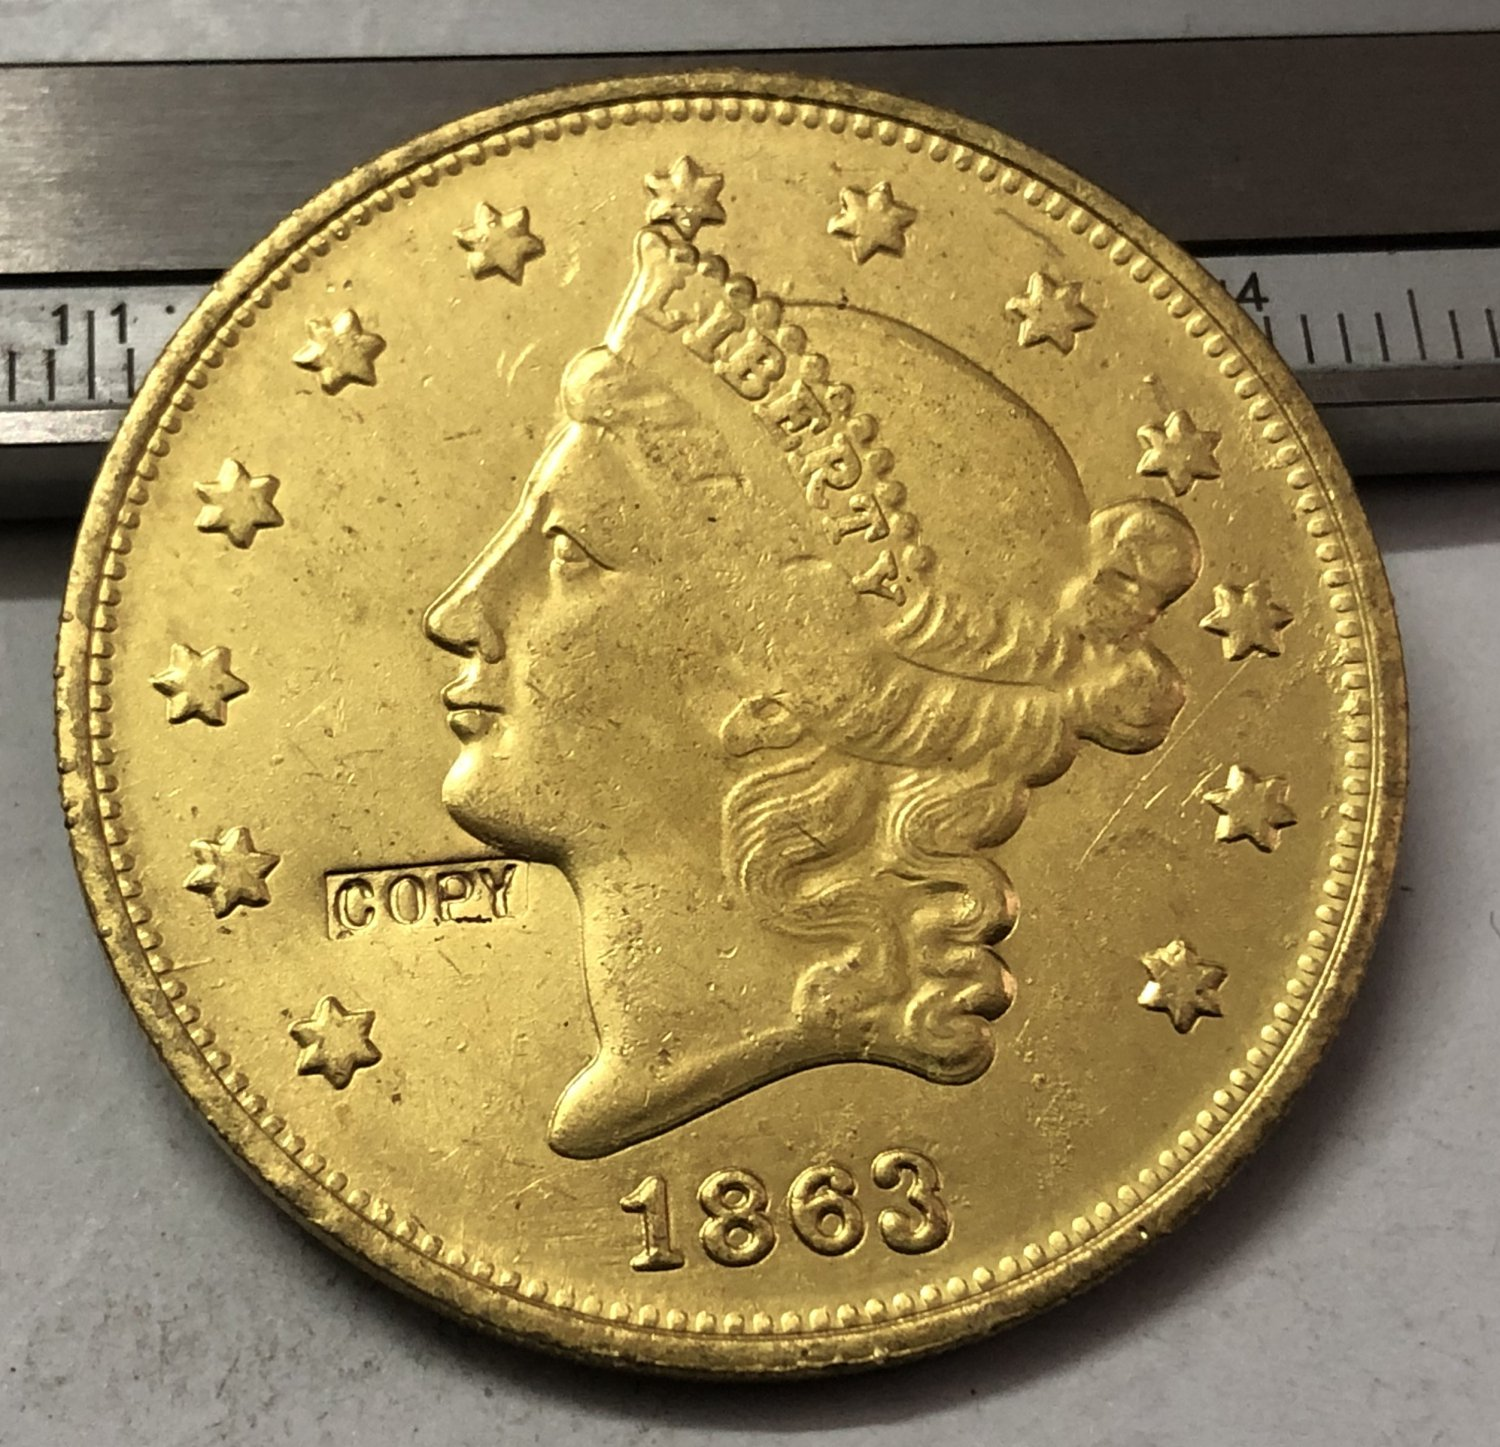 1 Pcs 1863 Liberty Head $20 Twenty Dollar Copy Coins  For Collection